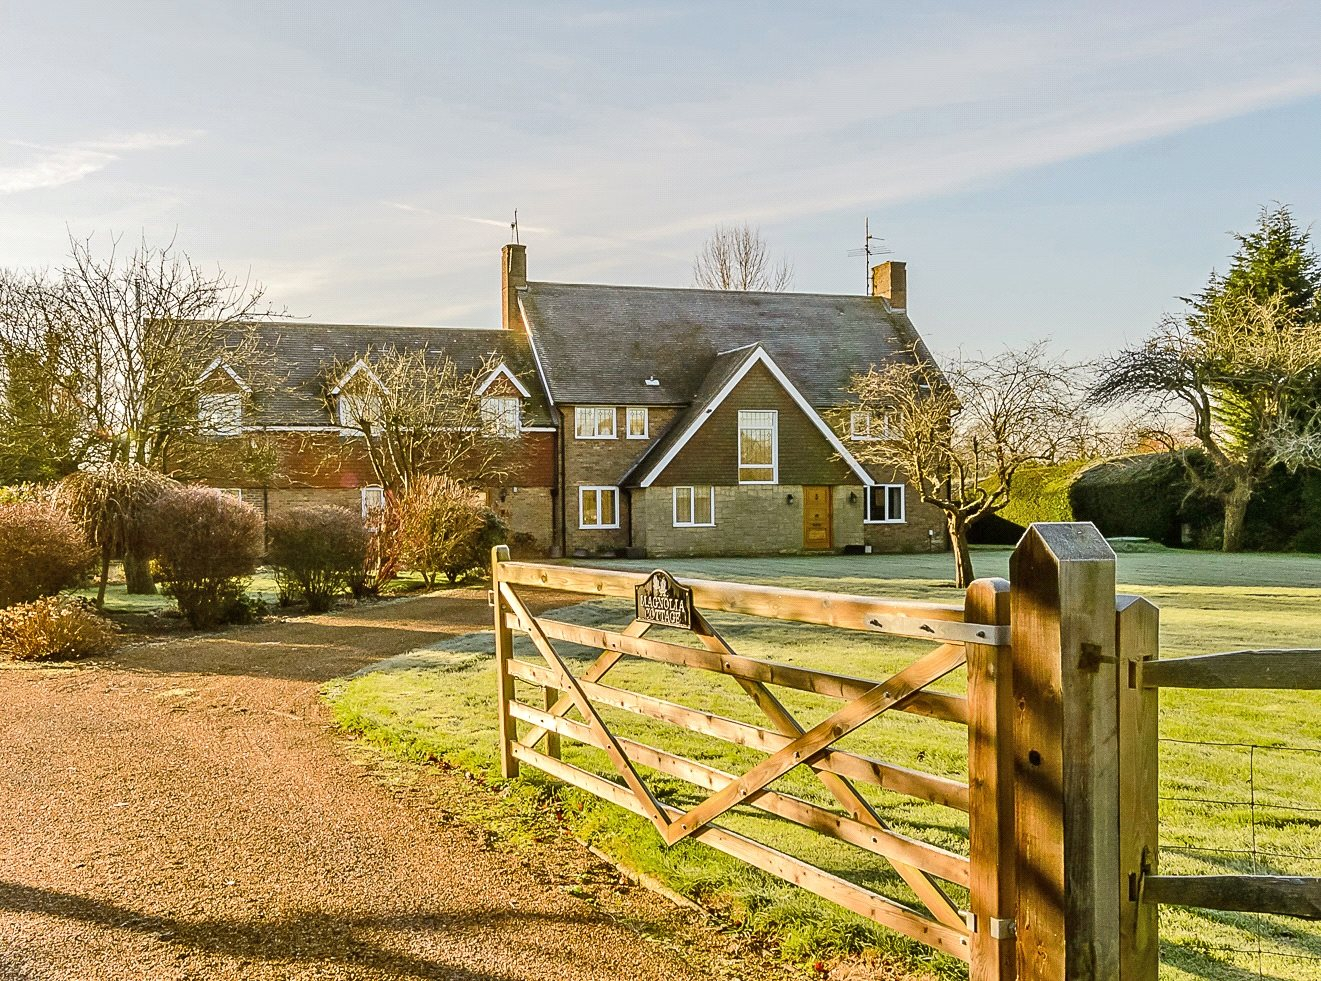 独户住宅 为 销售 在 Lyons Road, Slinfold, Horsham, West Sussex, RH13 Horsham, 英格兰